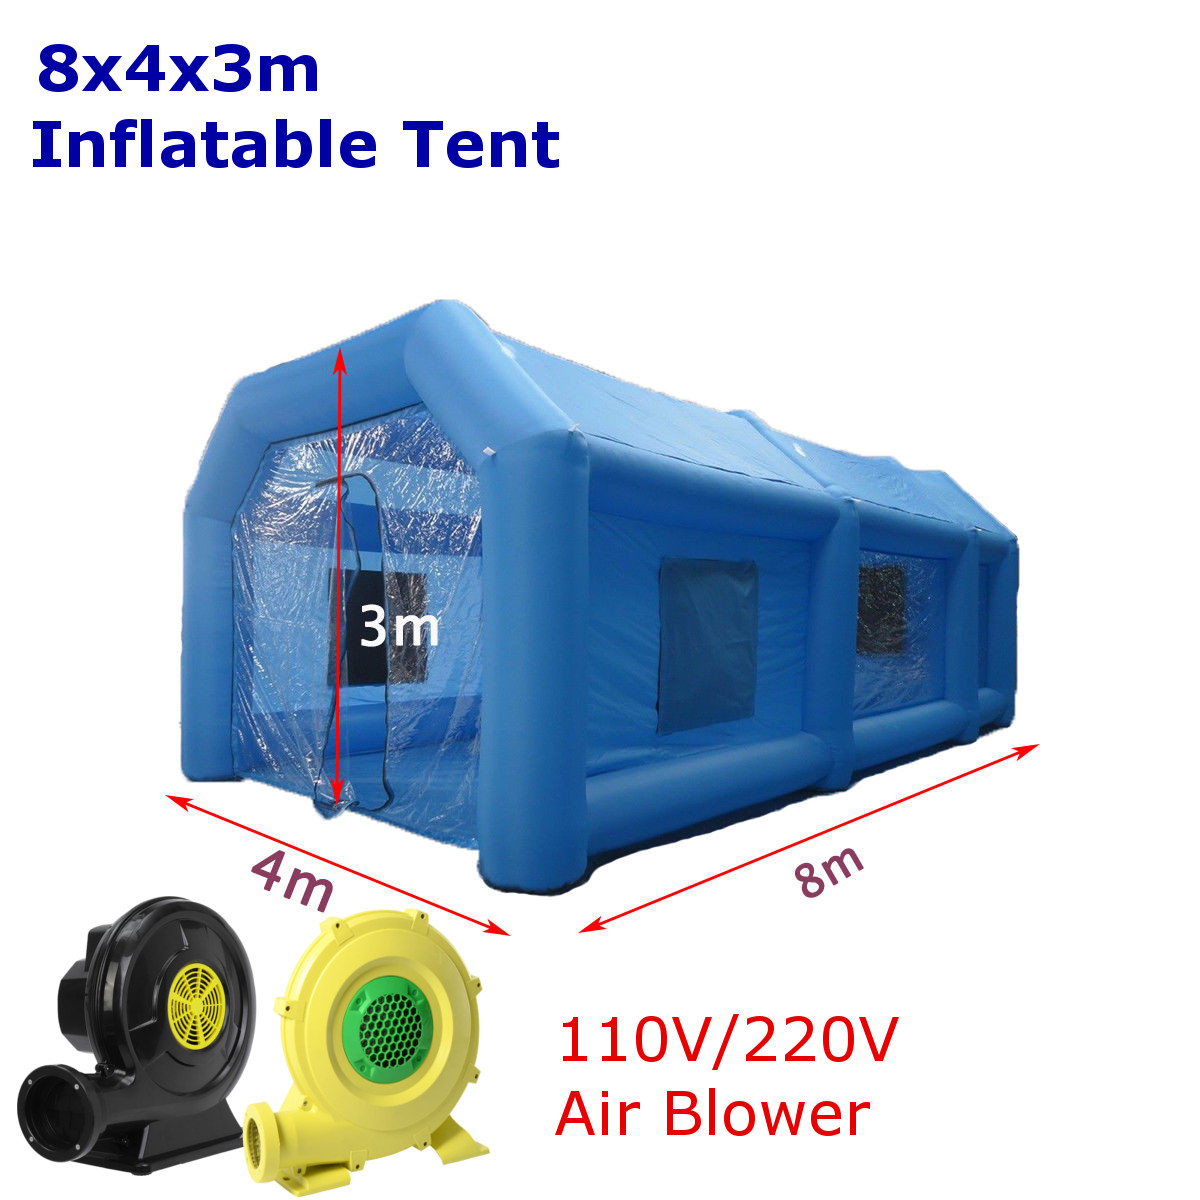 220V Inflatable Paint Spray Booth Car Workstation Tent with Air Blower + Repair Kits